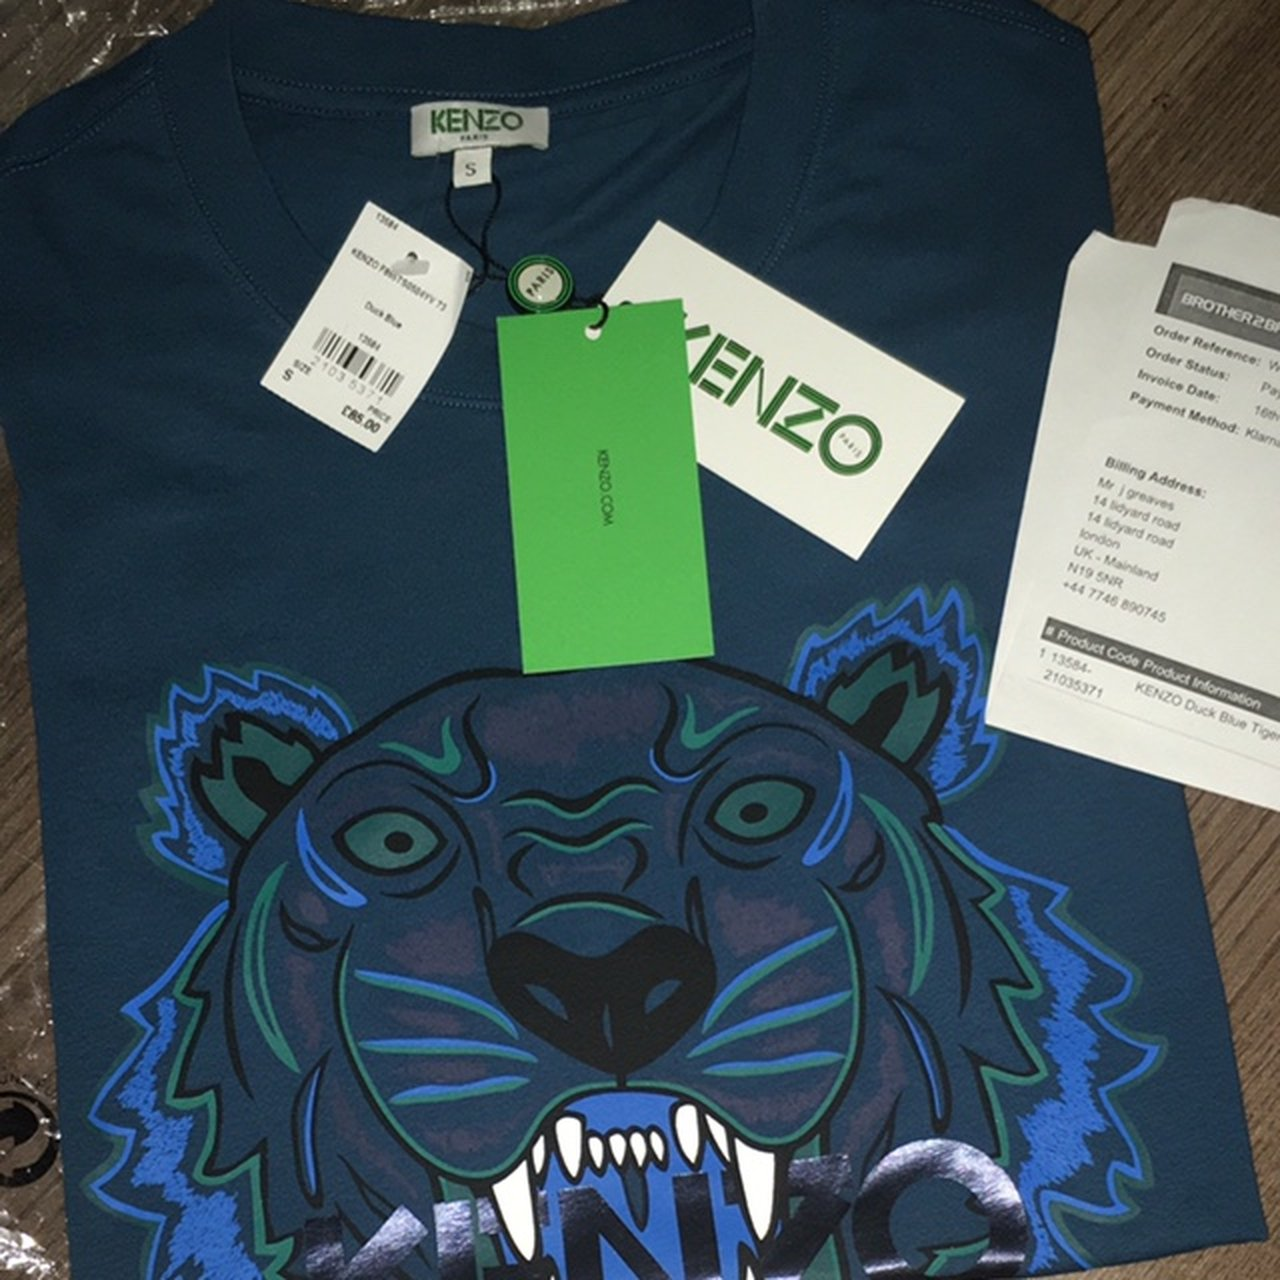 6bfc268a 100% authentic kenzo T-shirt comes with receipts and all - Depop